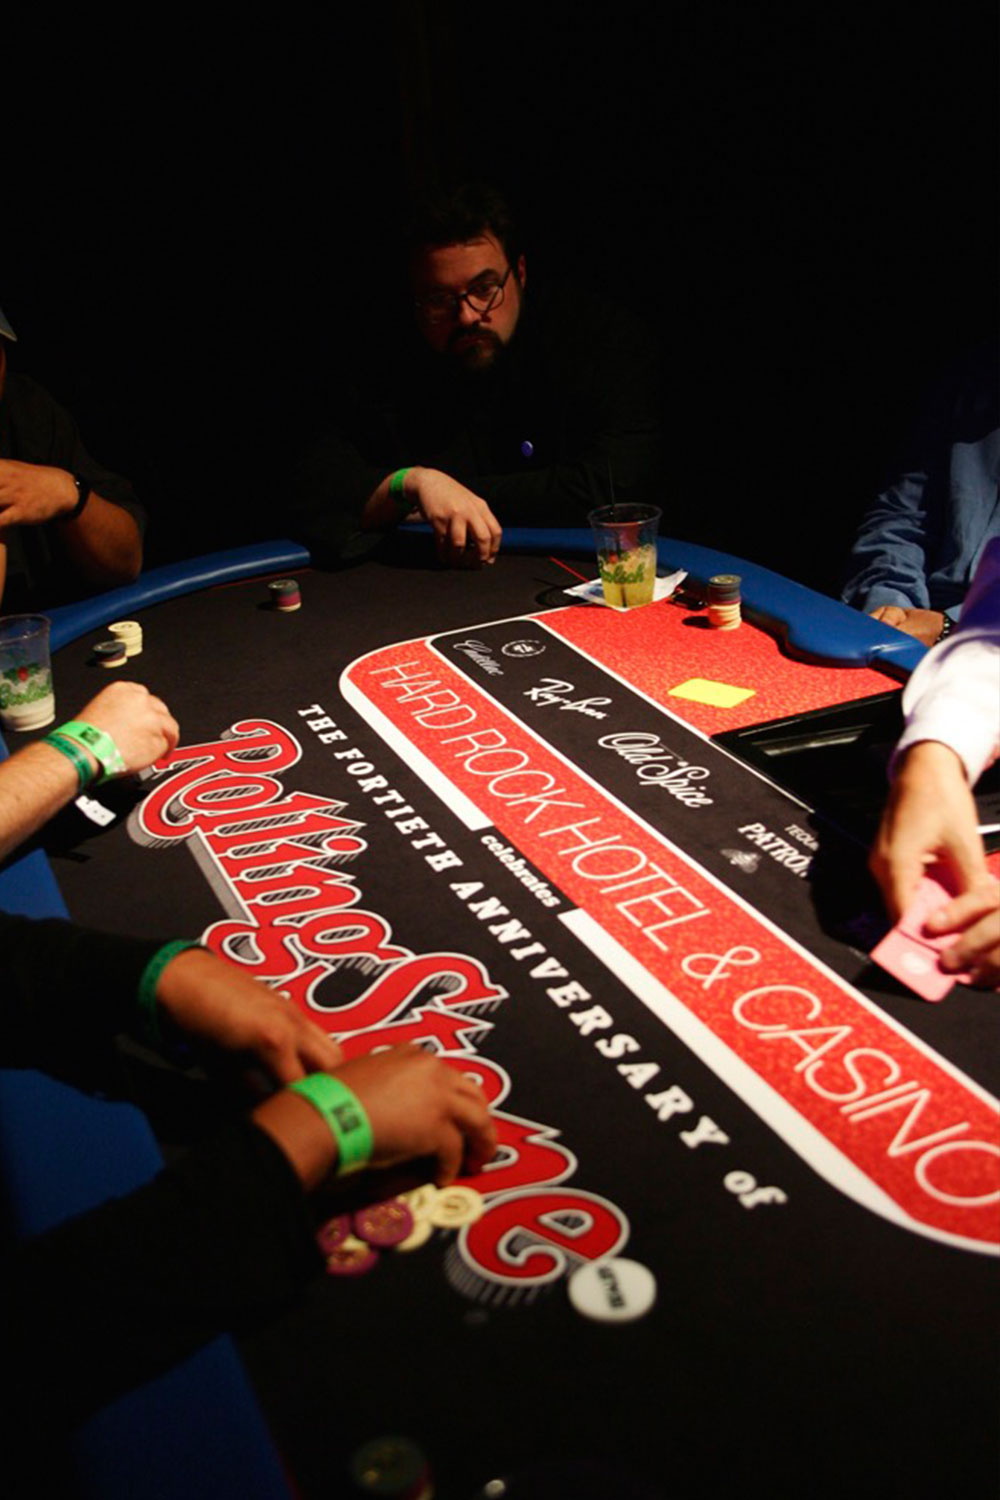 toast-hard-rock-hotel-rolling-stone-custom-casino-table-10twelve.jpg